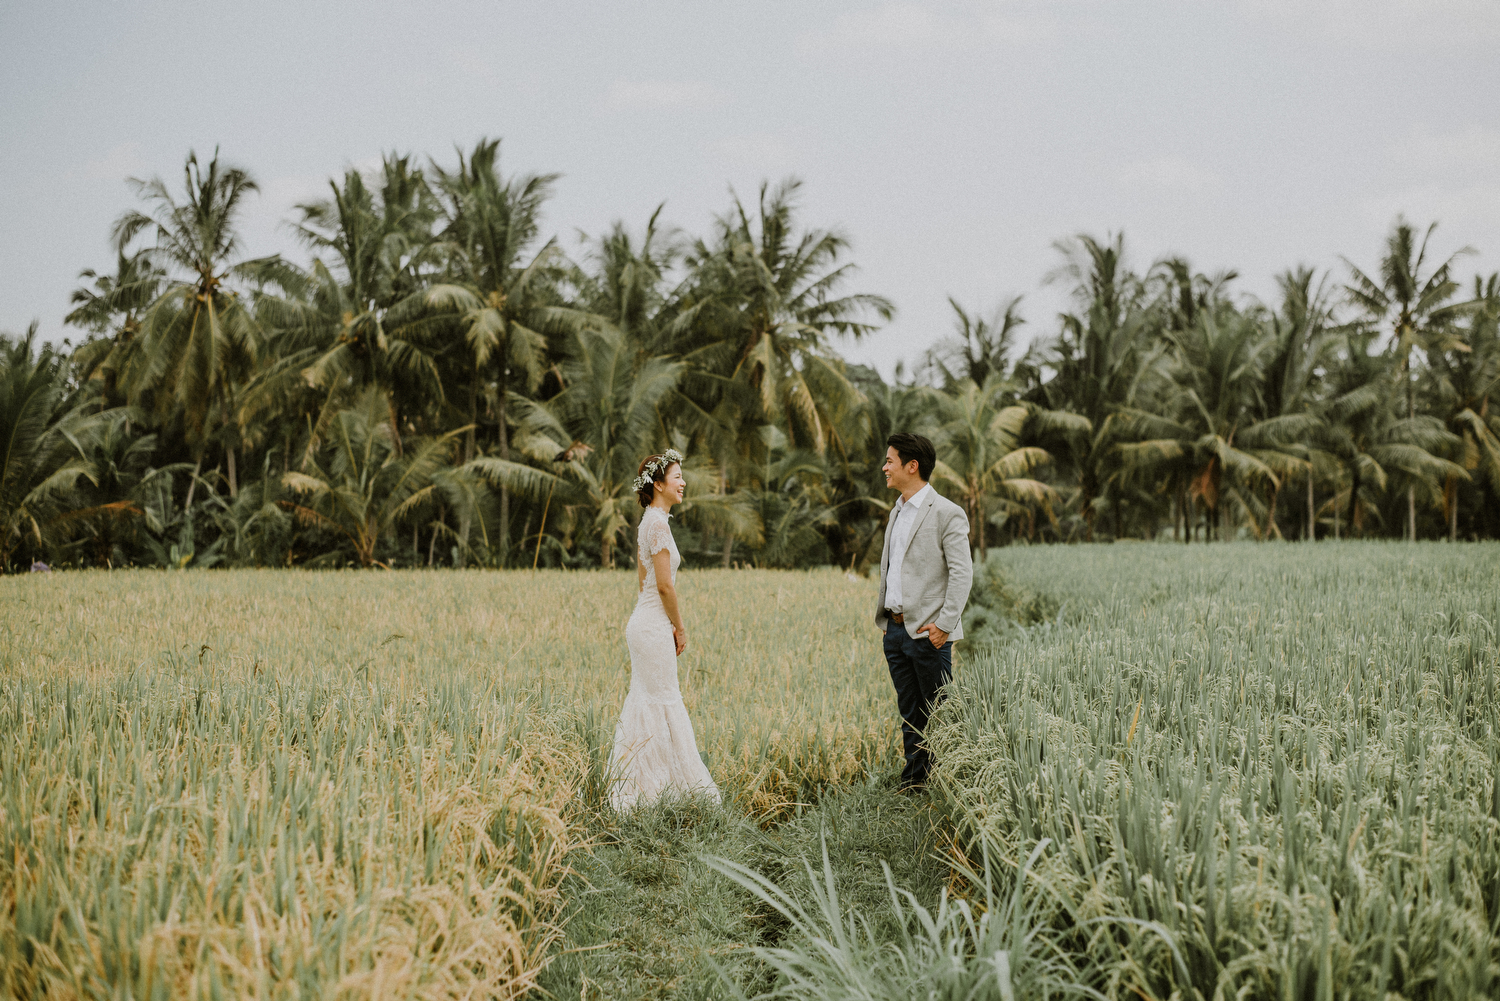 preweddinginbali-bali-batur-ubud-diktatphotography-engagemnet-baliweddingphotographer-weddinginbali-28